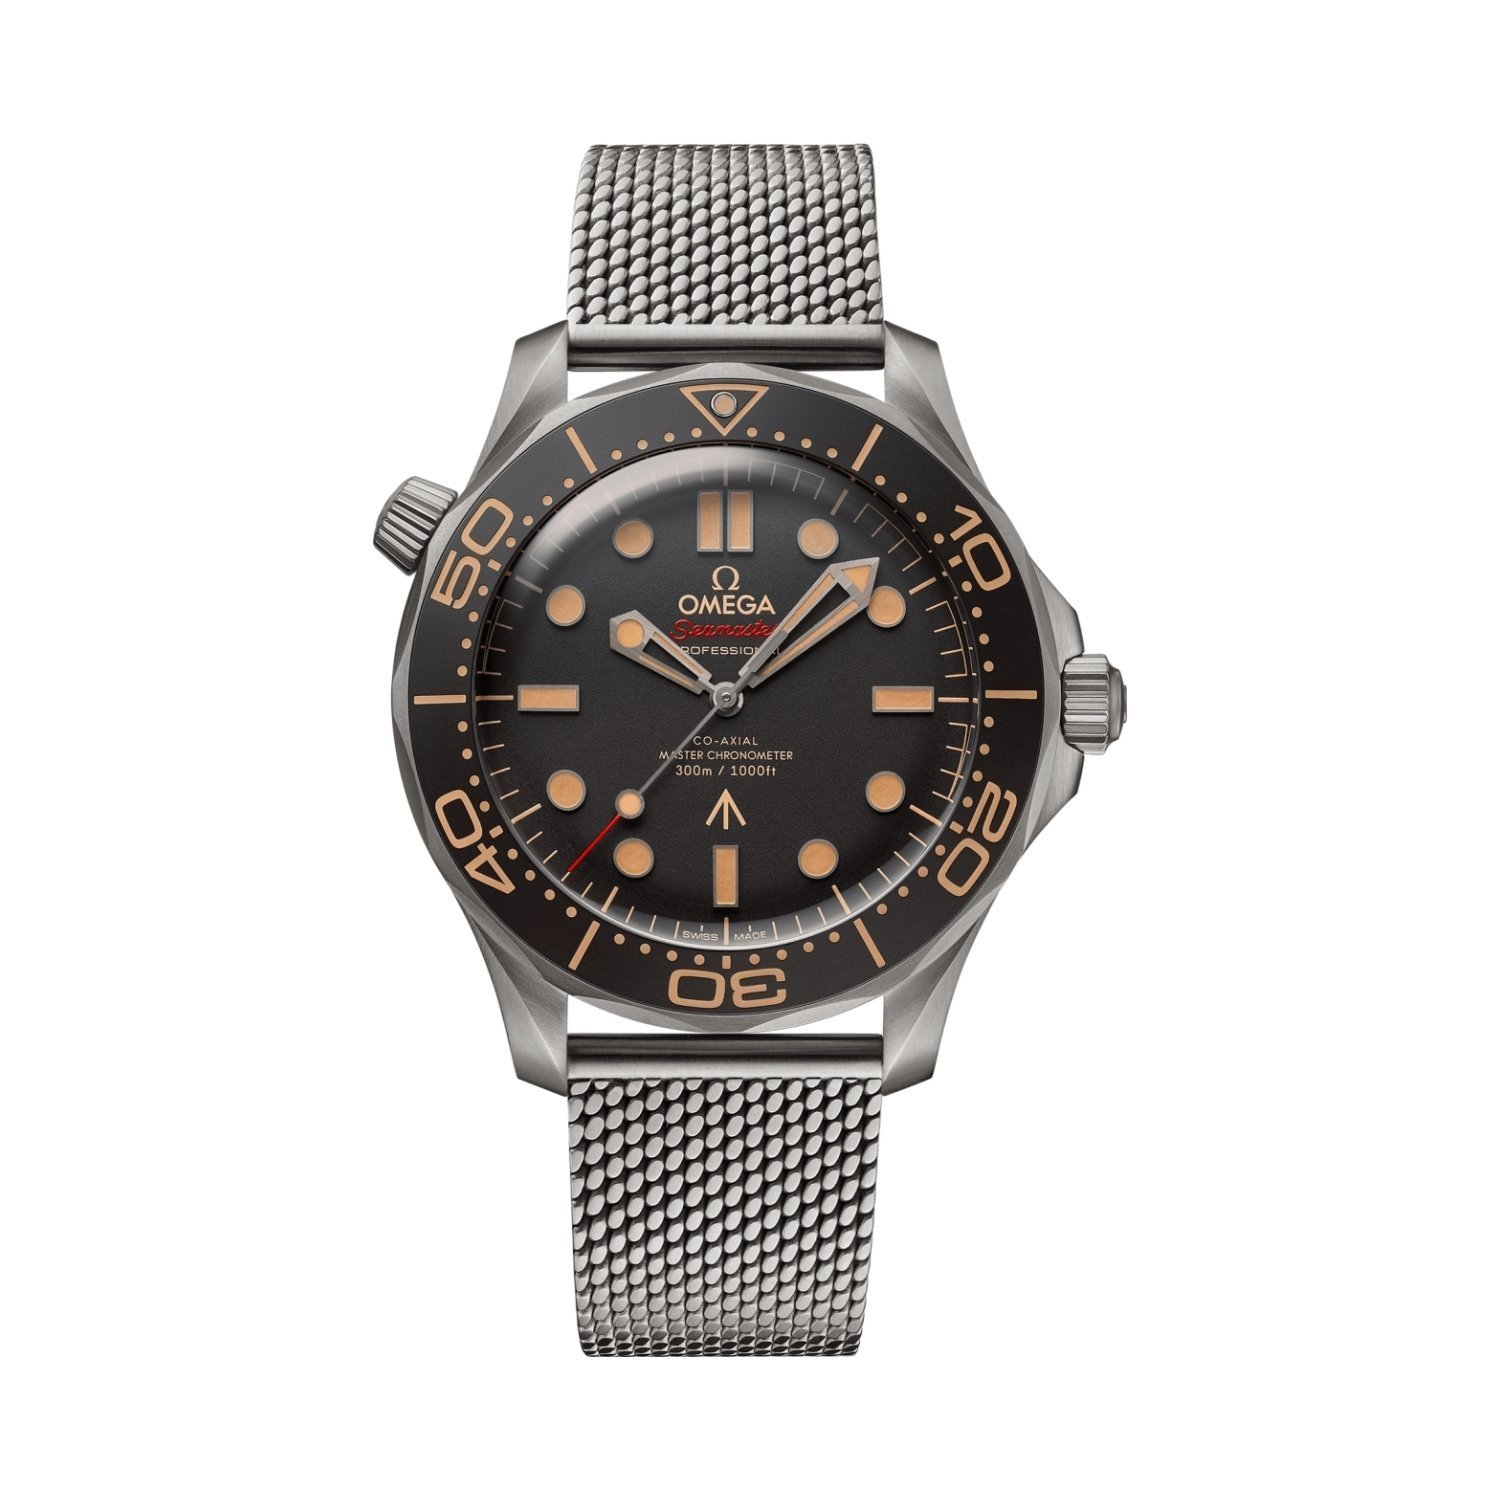 Montre Omega Seamaster Diver 300M Co-Axial Master Chronometer Edition 007 42mm vue 1